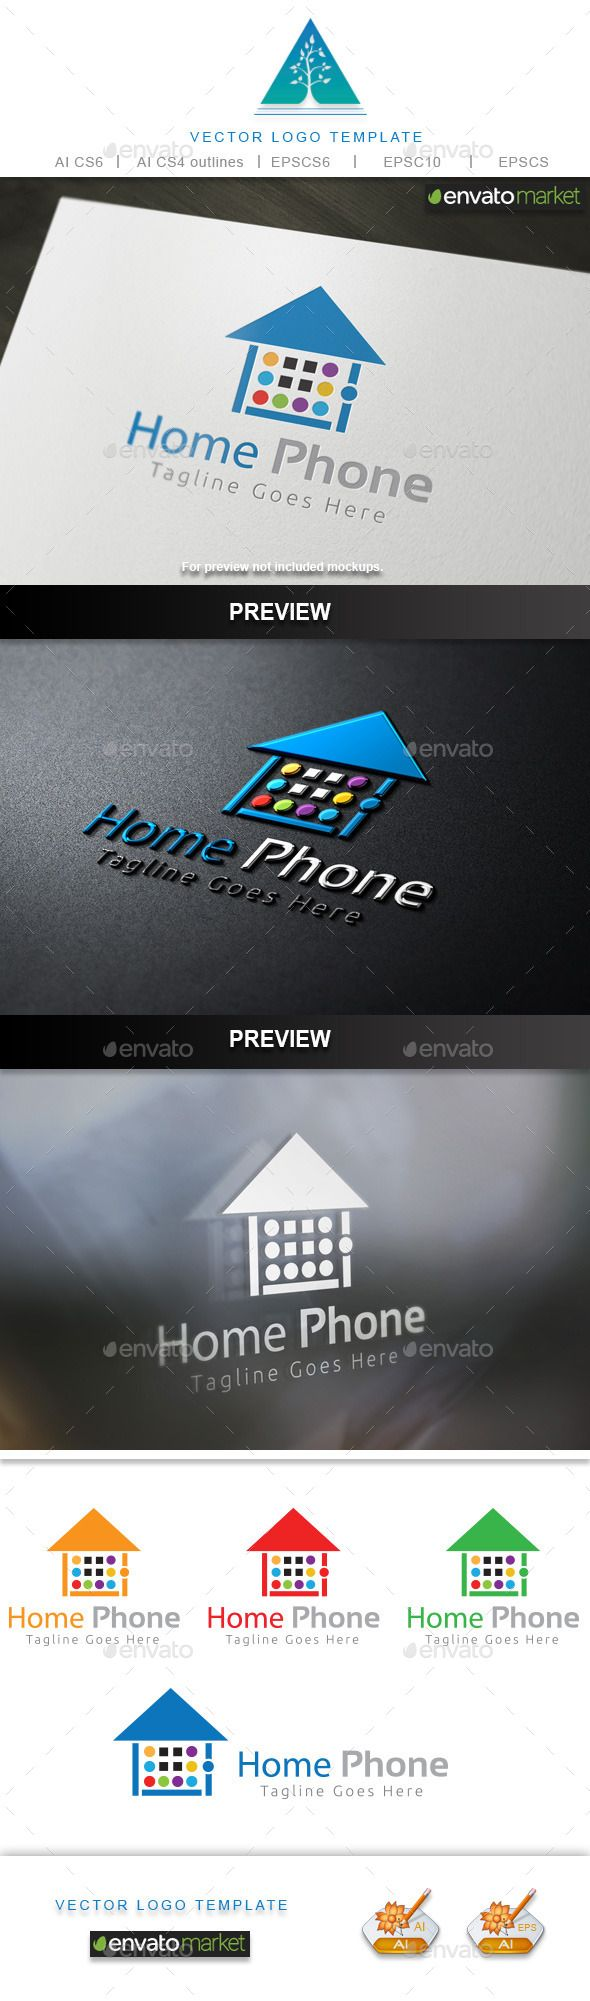 Home Phone Logo — Vector EPS #logo #home • Available here → https://graphicriver.net/item/home-phone-logo/10448857?ref=pxcr